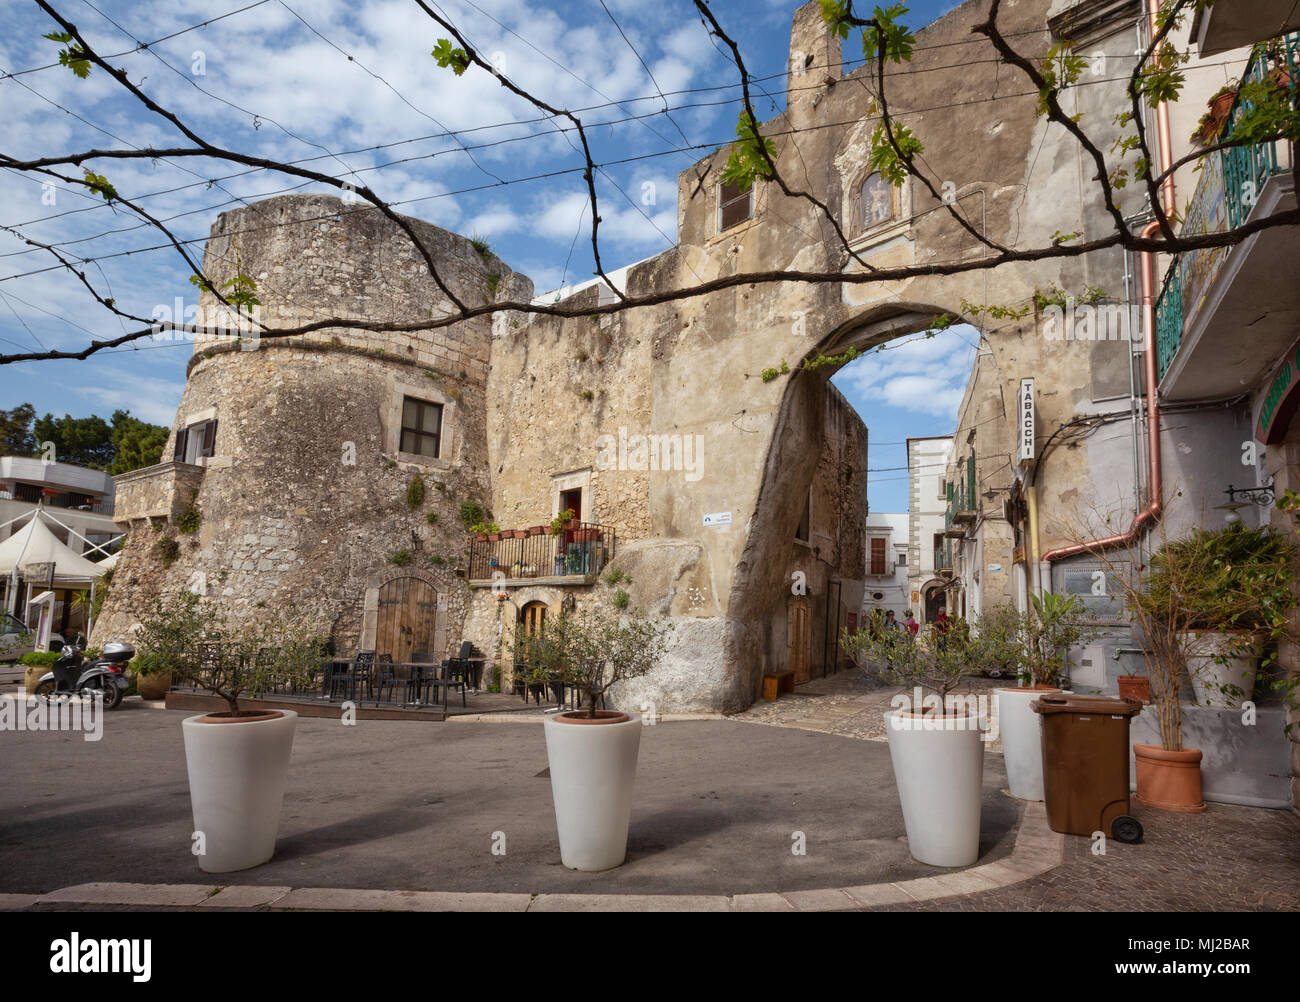 PESCHICI, ITALY - APRIL 29, 2018 - Peschici is a little picturesque village in Puglia, south Italy. Its territory belongs to the Gargano National Park - Stock Image